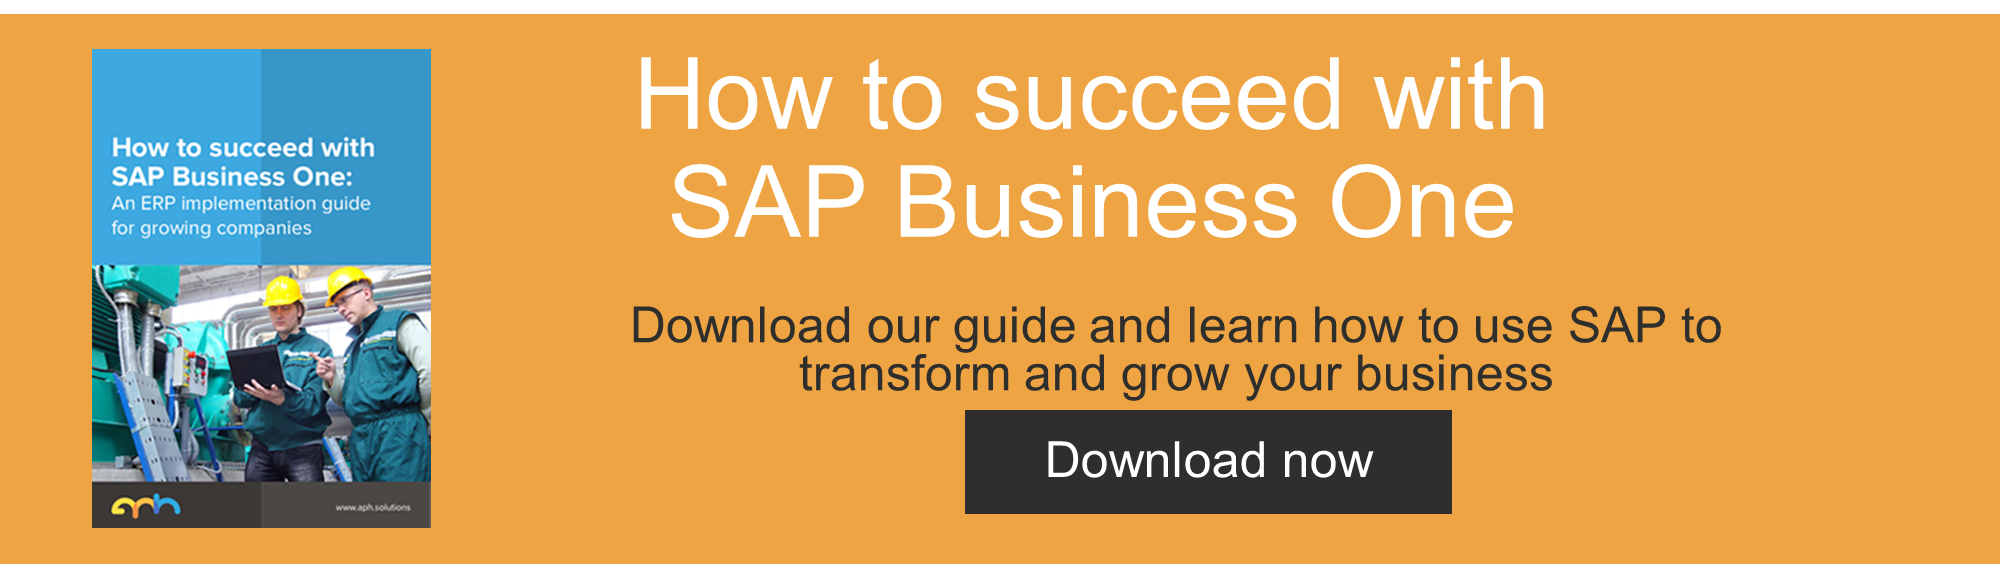 How to succeed with SAP Business One